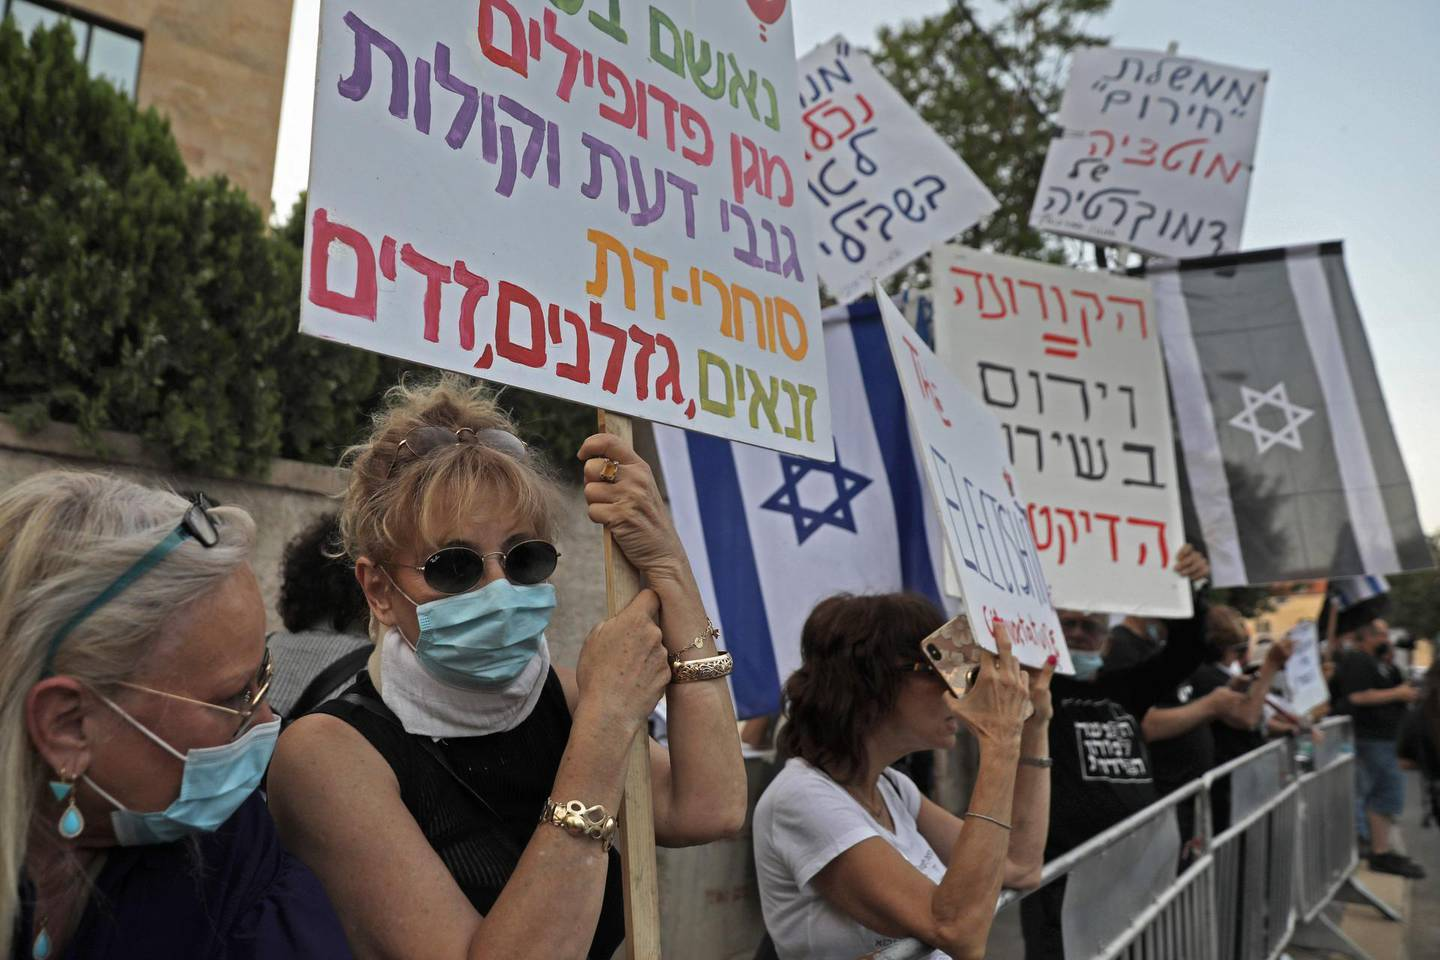 Israeli demonstrators, wearing protective masks amid the COVID-19 pandemic, carry placards during a demonstration against Prime Minister Benjamin Netanyahu in front of his residence in Jerusalem, on May 17 2020, as Israel's parliament swore in a new unity government. After more than 500 days without a stable government and three inconclusive elections, lawmakers in the 120-seat parliament approved a three-year coalition, with 73 voting for and 46 against. One member was absent. The new government was set to confront serious crises in its first weeks, including the economic devastation wrought by the coronavirus and a looming battle over Israel's possible annexation of large parts of the occupied West Bank. / AFP / MENAHEM KAHANA